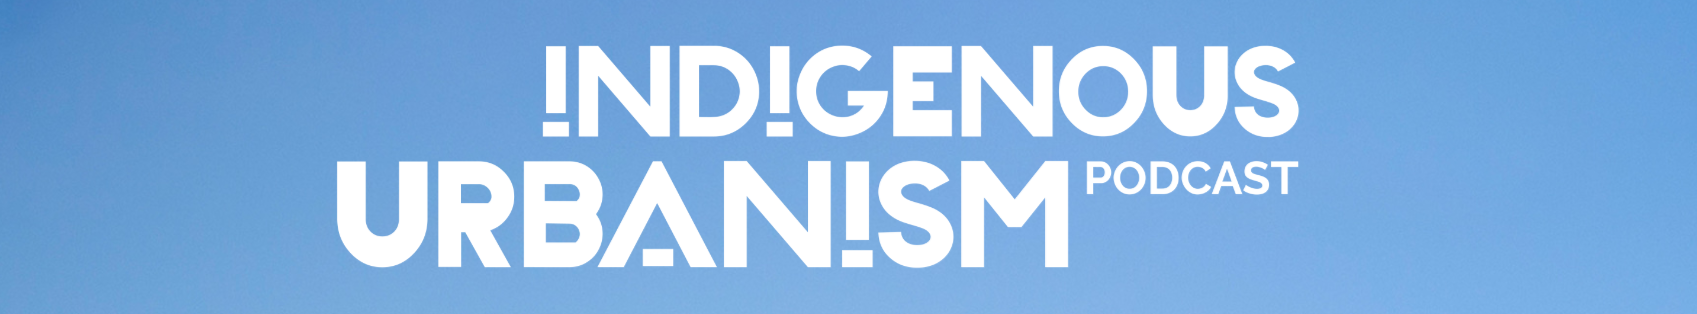 indigenous urbanism podcast.PNG